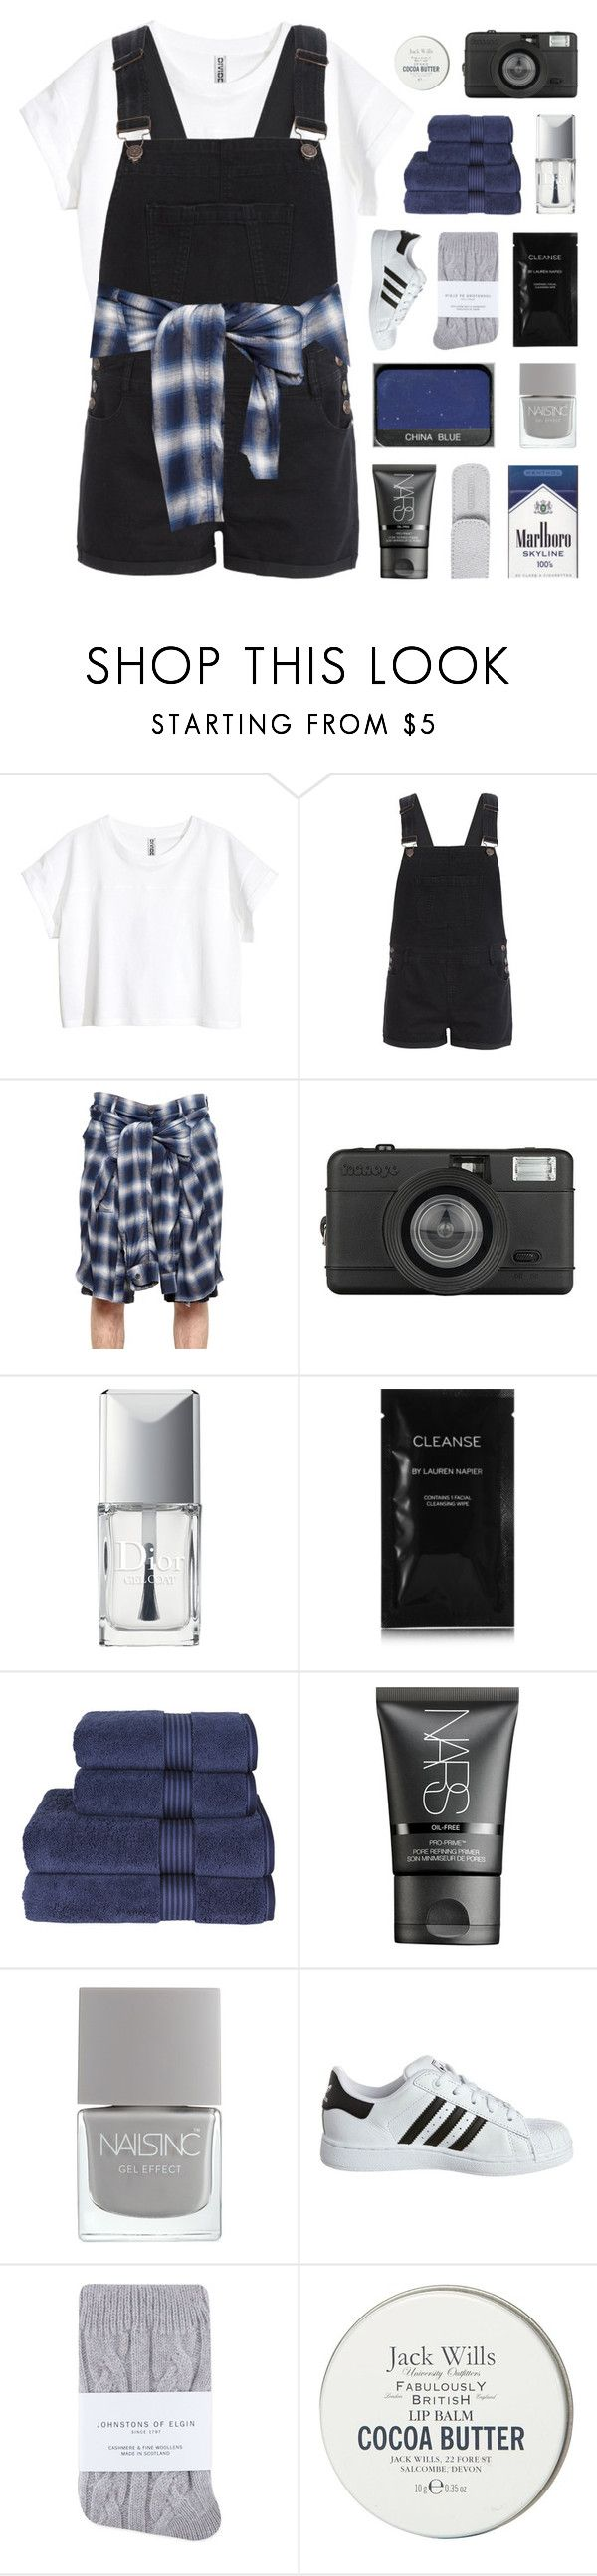 """""""STAY LOST // 12:18"""" by glazes ❤ liked on Polyvore featuring H&M, New Look, Maison Mihara Yasuhiro, Lomography, Christian Dior, Cleanse by Lauren Napier, Christy, NARS Cosmetics, Tweezerman and adidas Originals"""